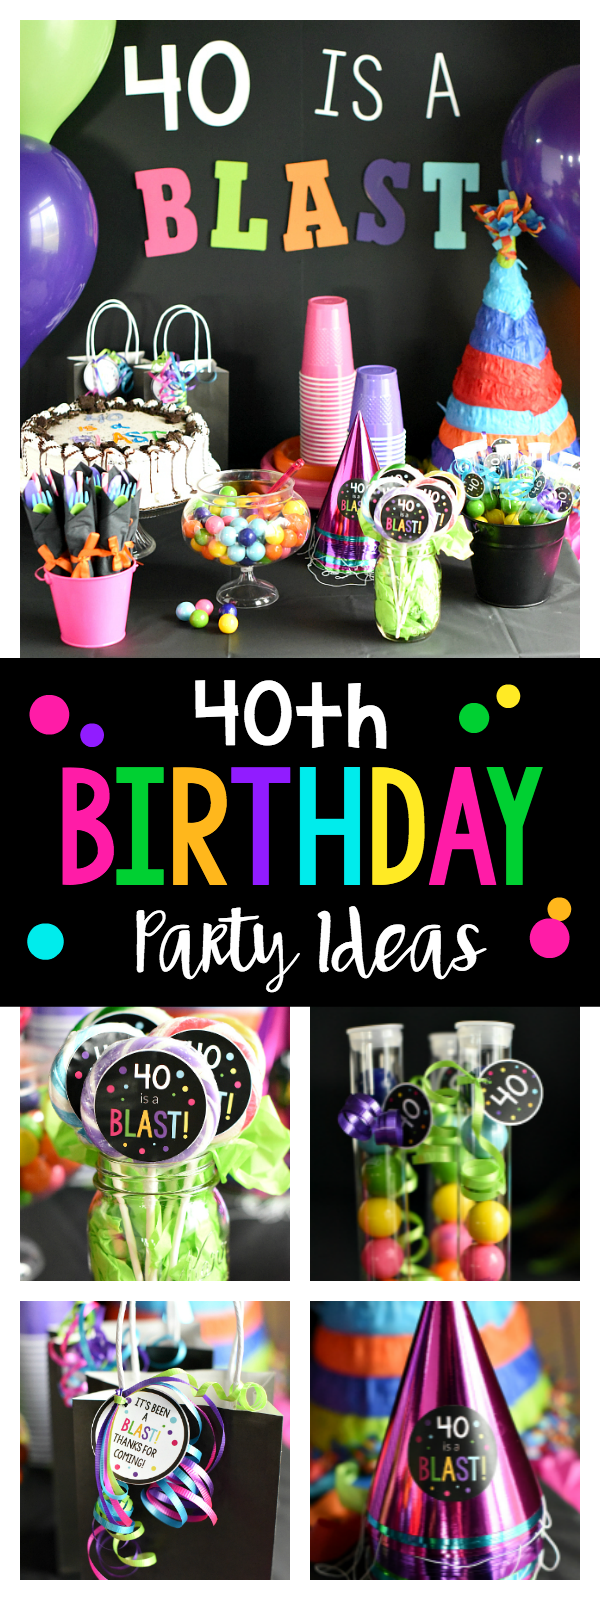 40th birthday party 40 is a blast fun squared for 40 birthday decoration ideas